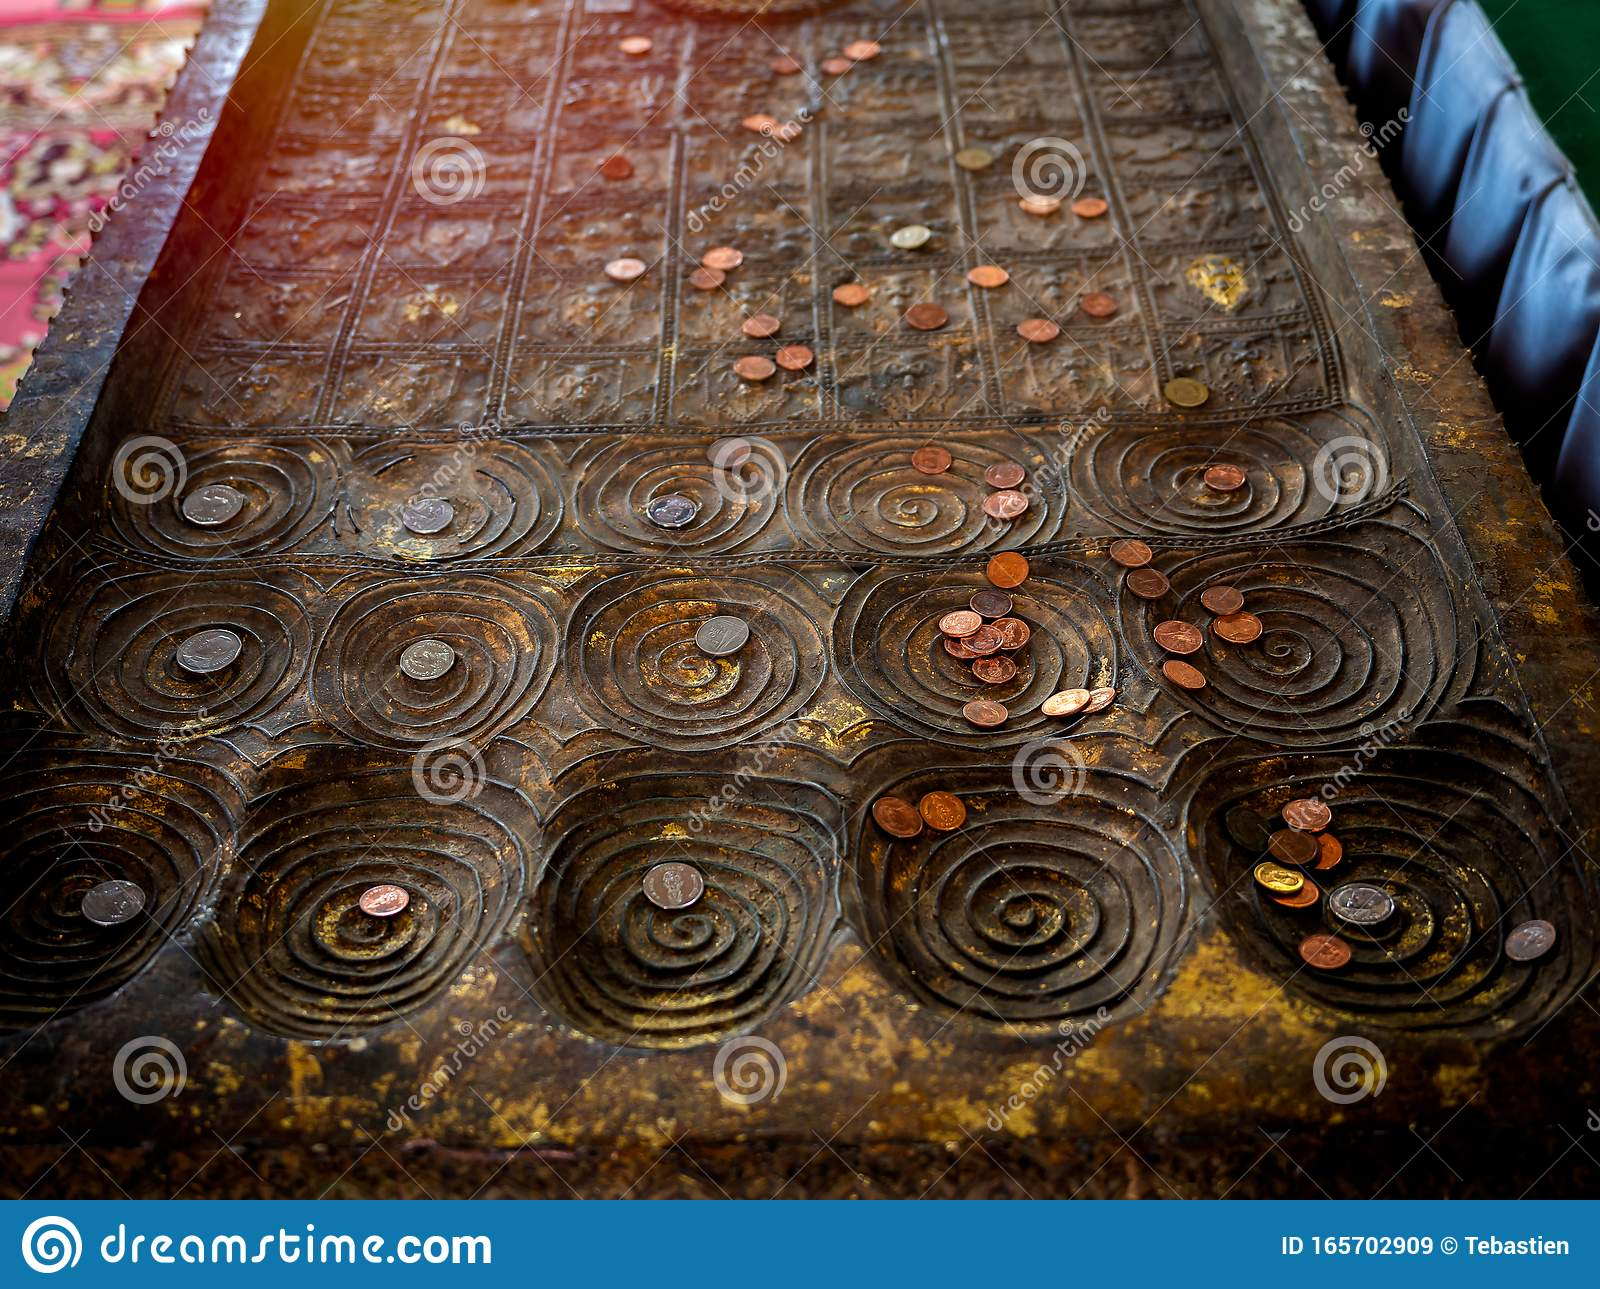 Many Coins Placed On Replica Of Buddha Footprint In The ...